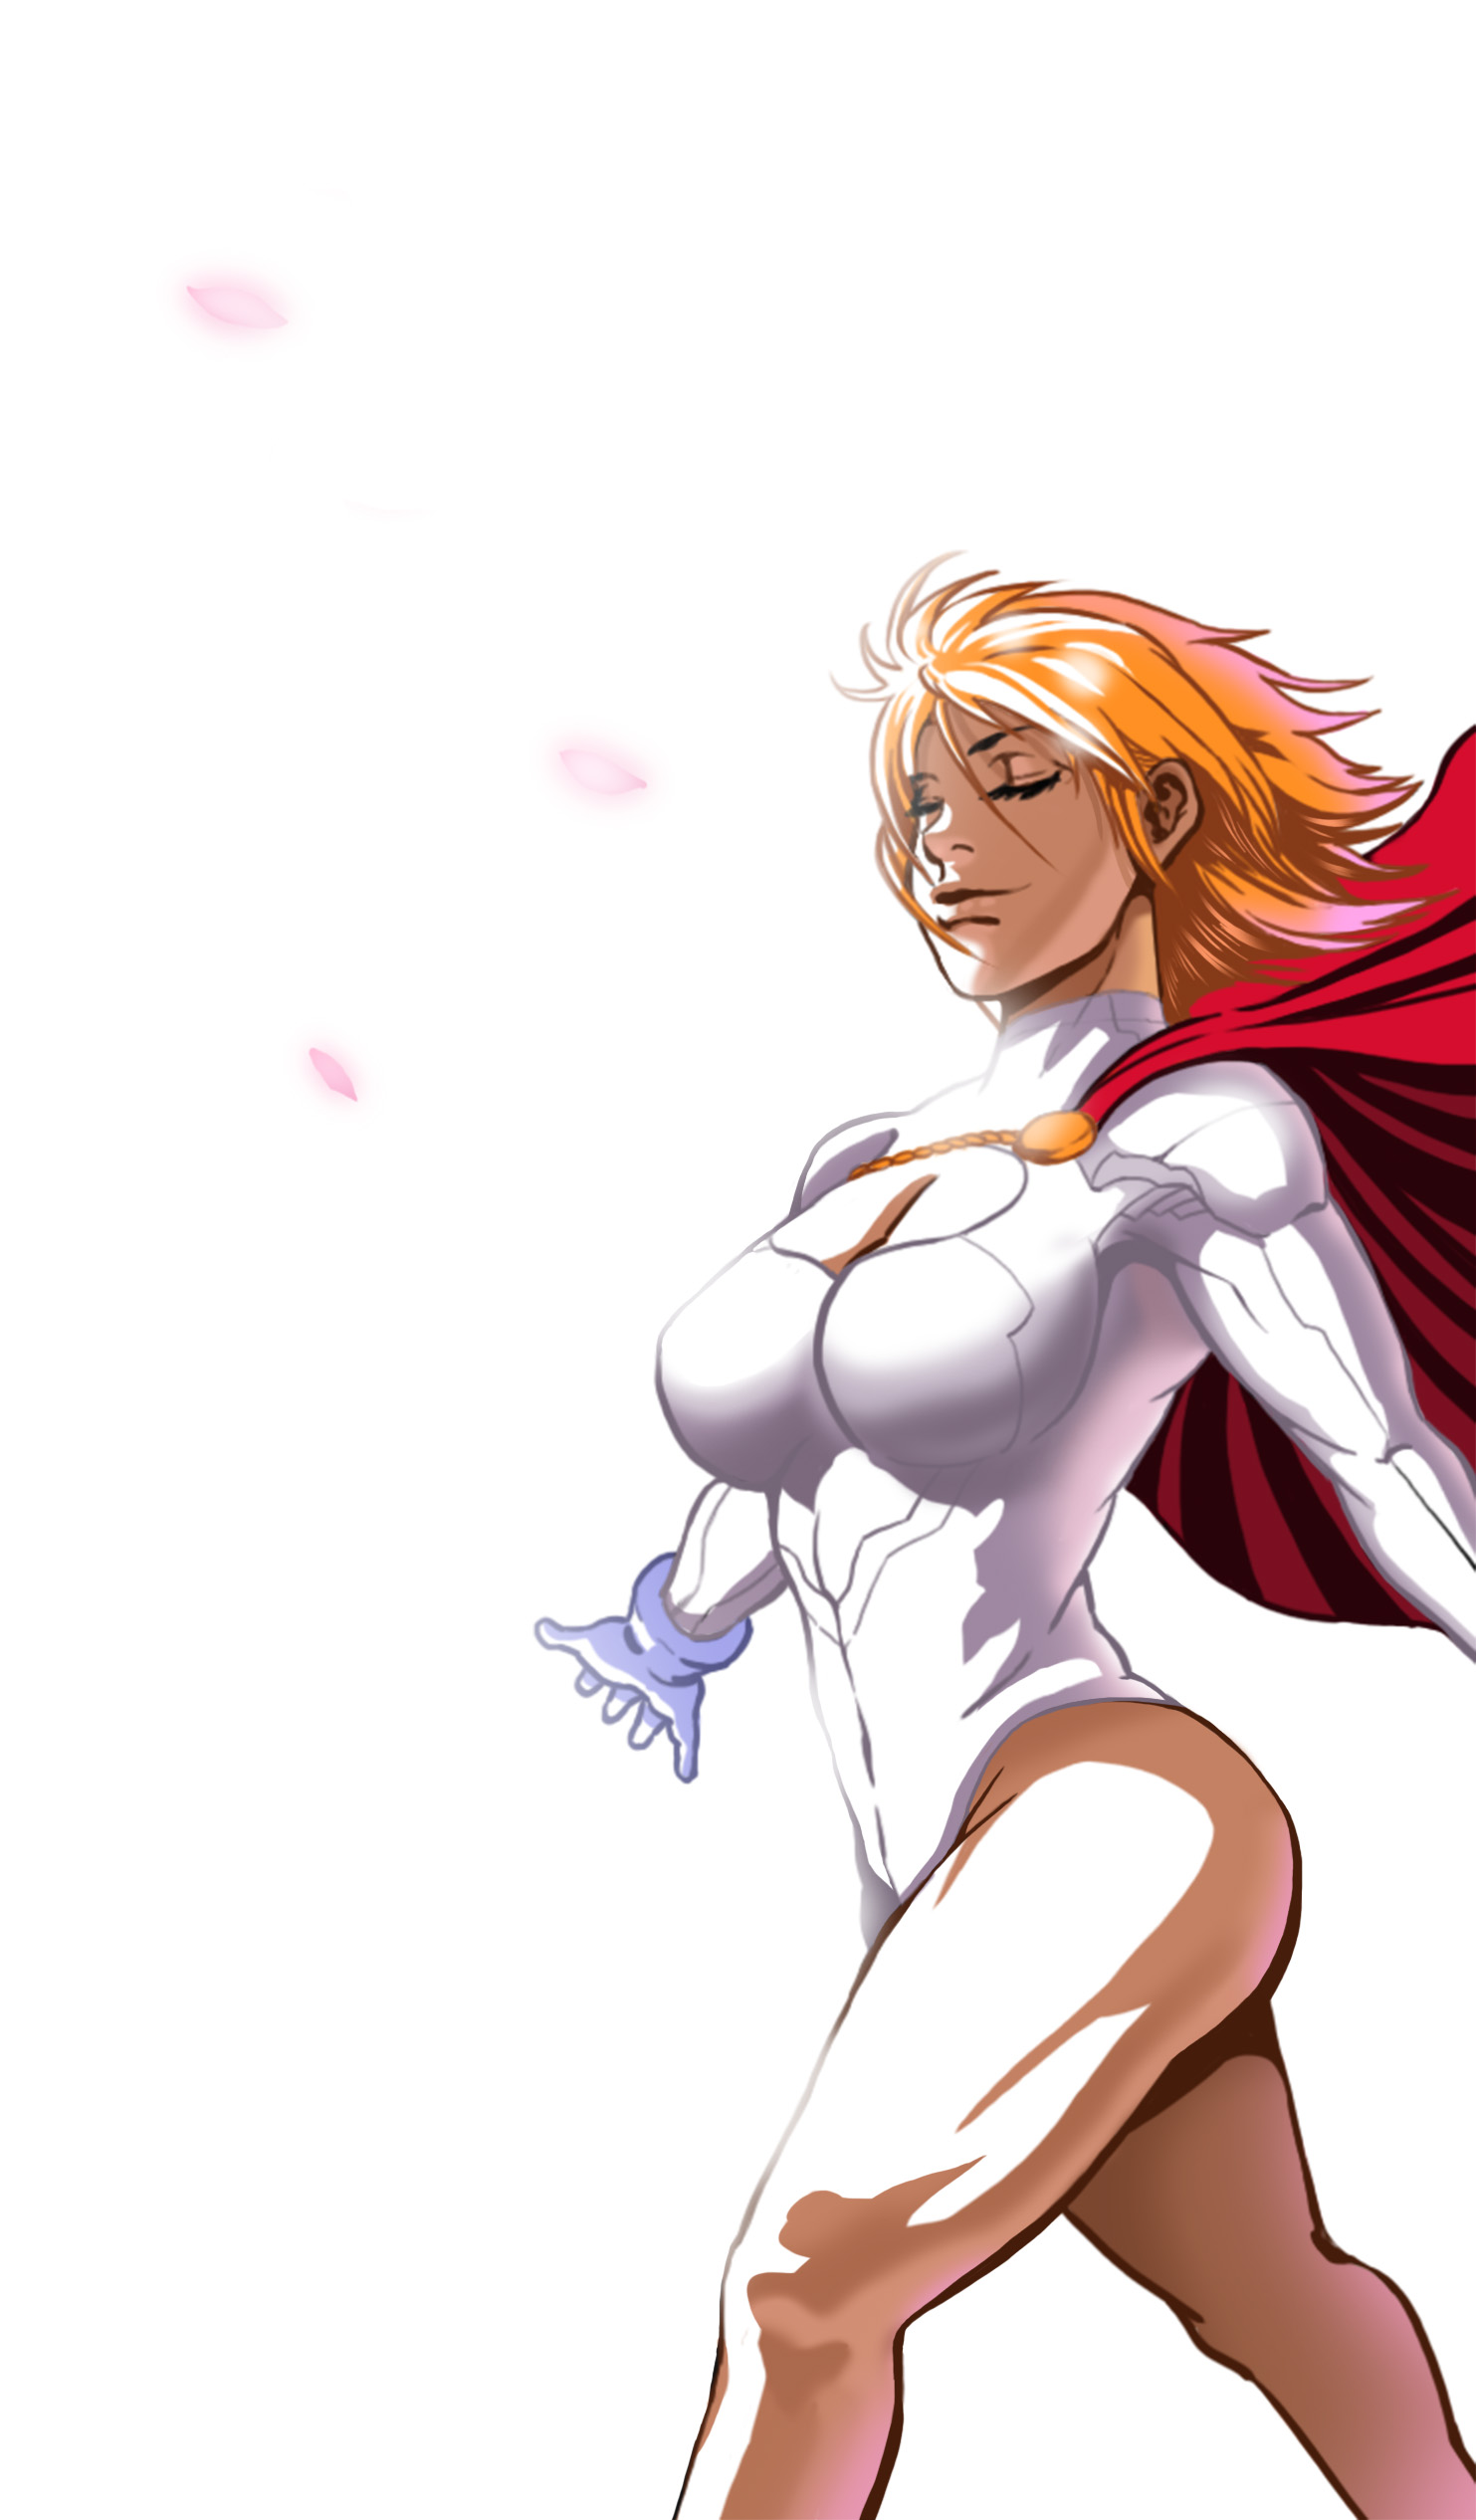 Powergirl 2-f by SeonGu